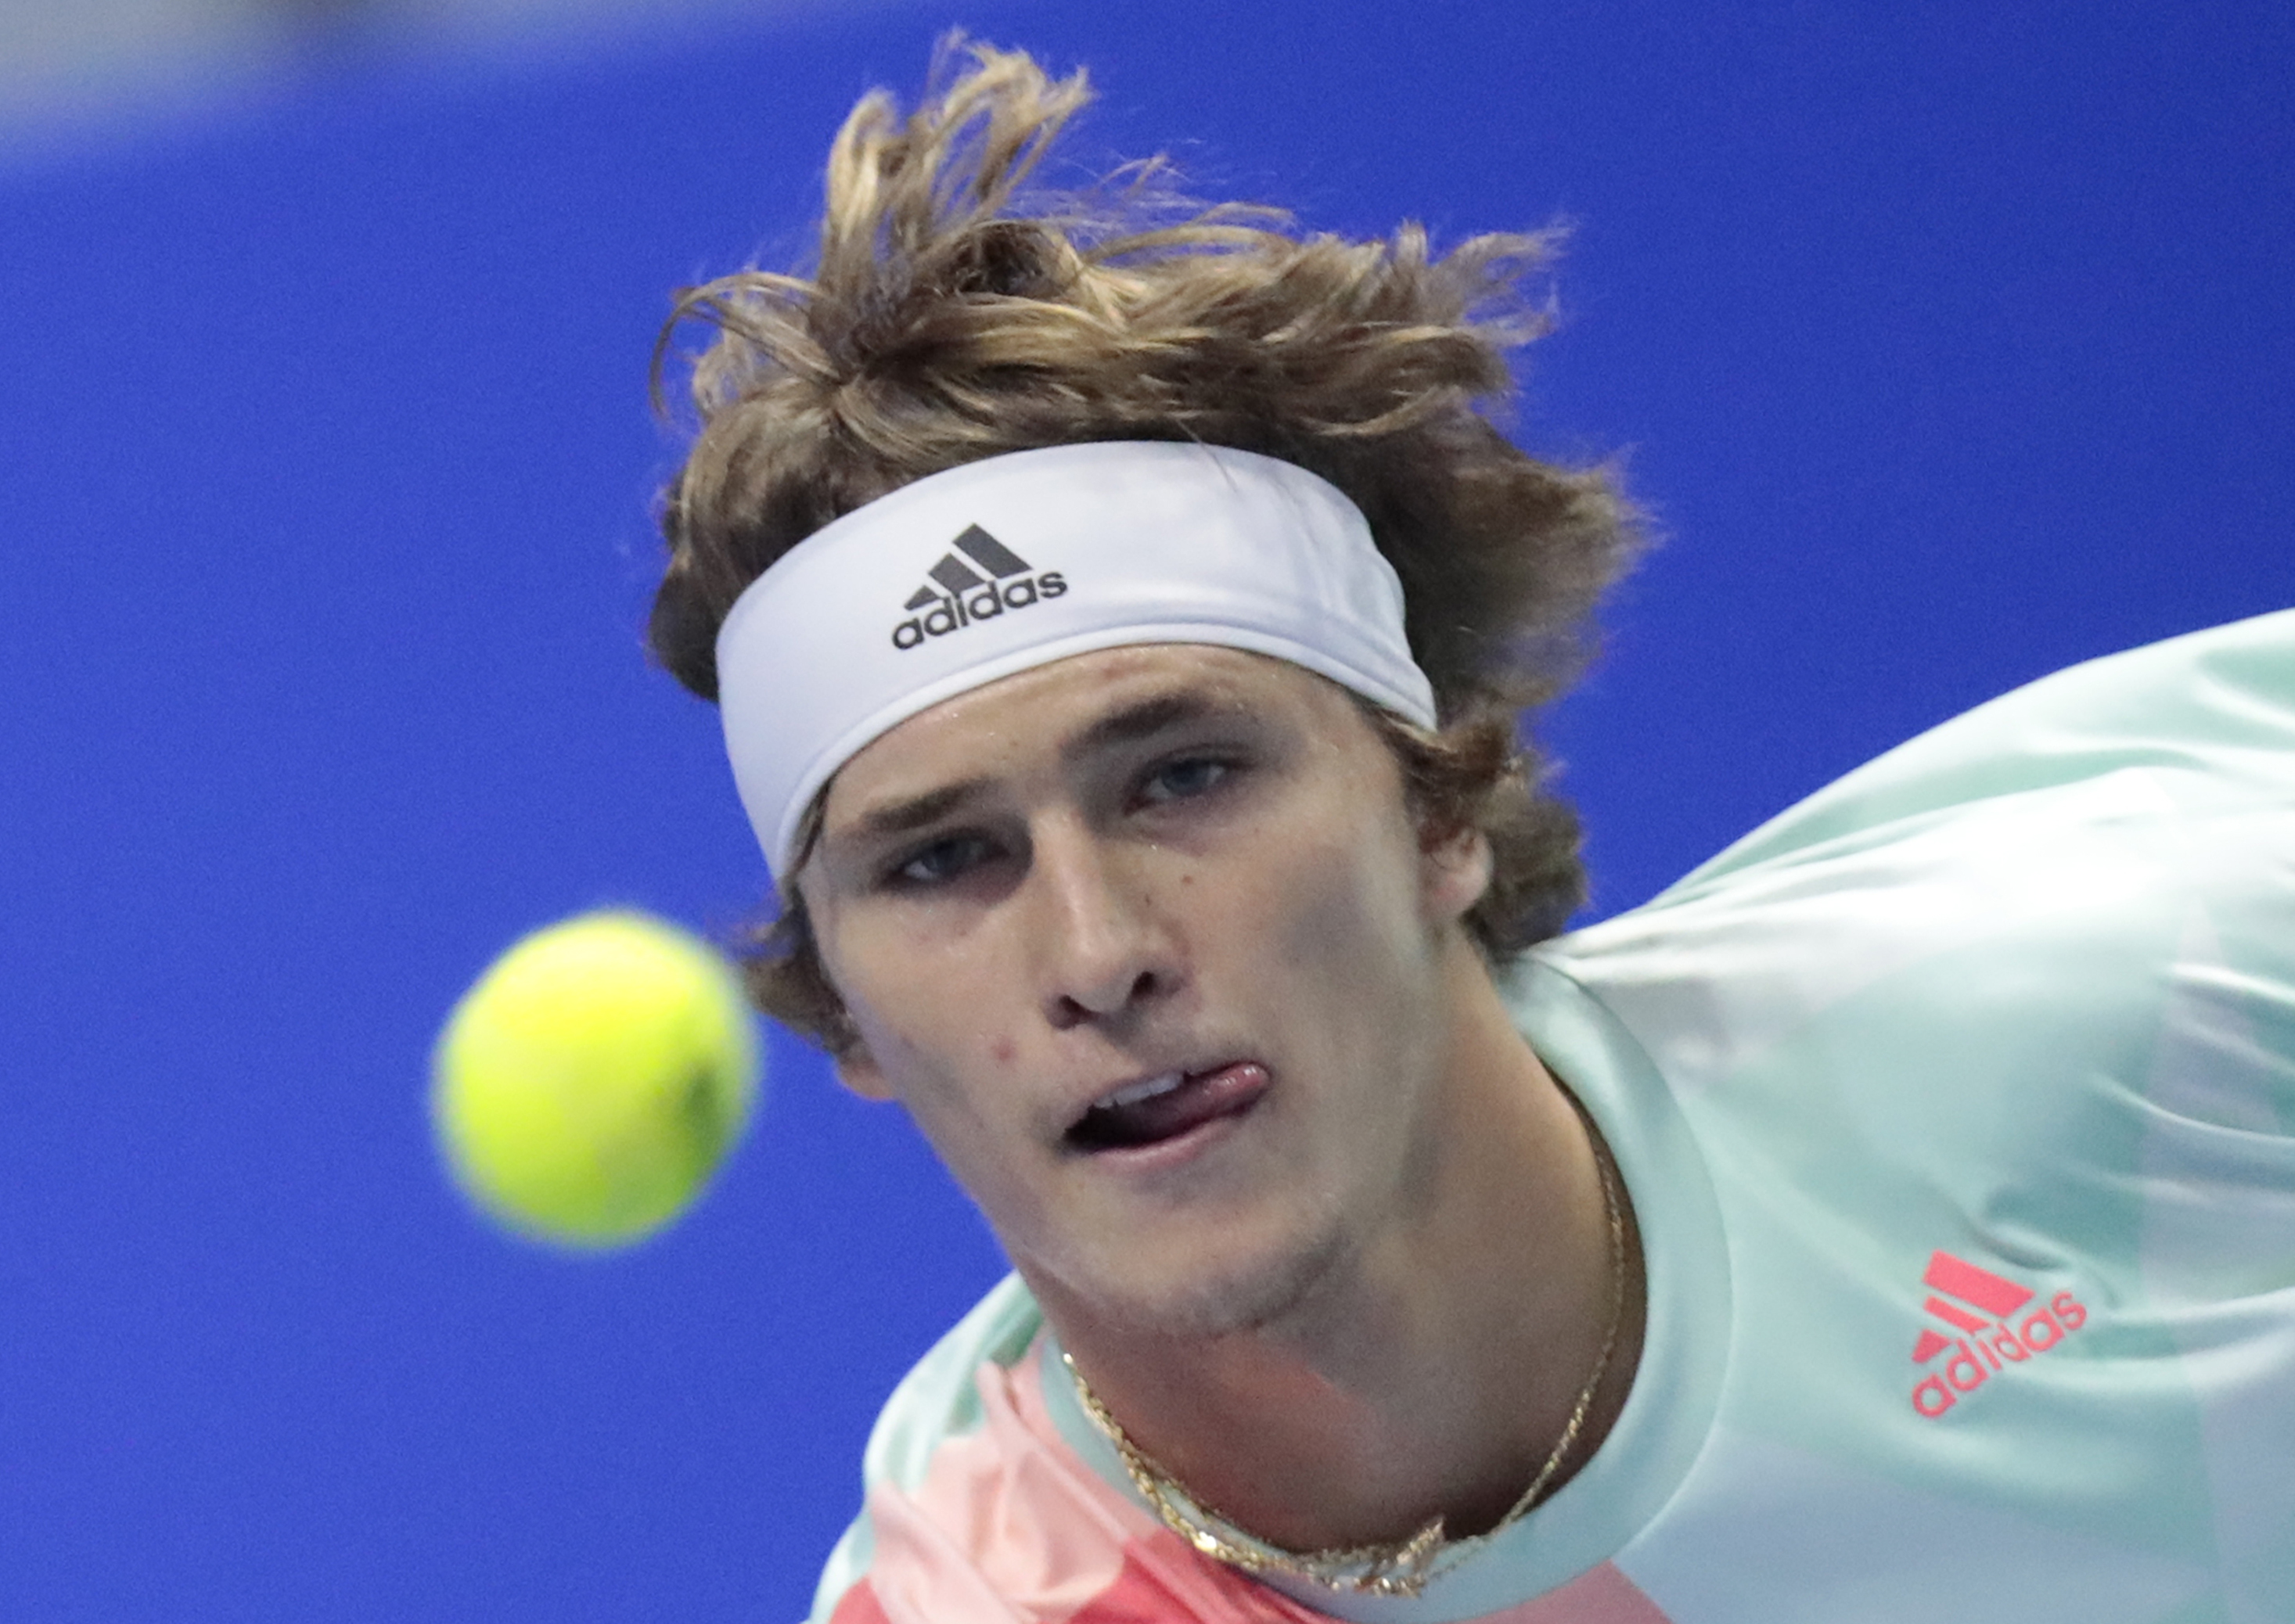 Alexander Zverev of Germany returns the ball to Tomas Berdych of Czech Republic during the St. Petersburg Open ATP tennis tournament semifinal match in St.Petersburg, Russia, Saturday, Sept. 24, 2016. (AP Photo/Dmitri Lovetsky)